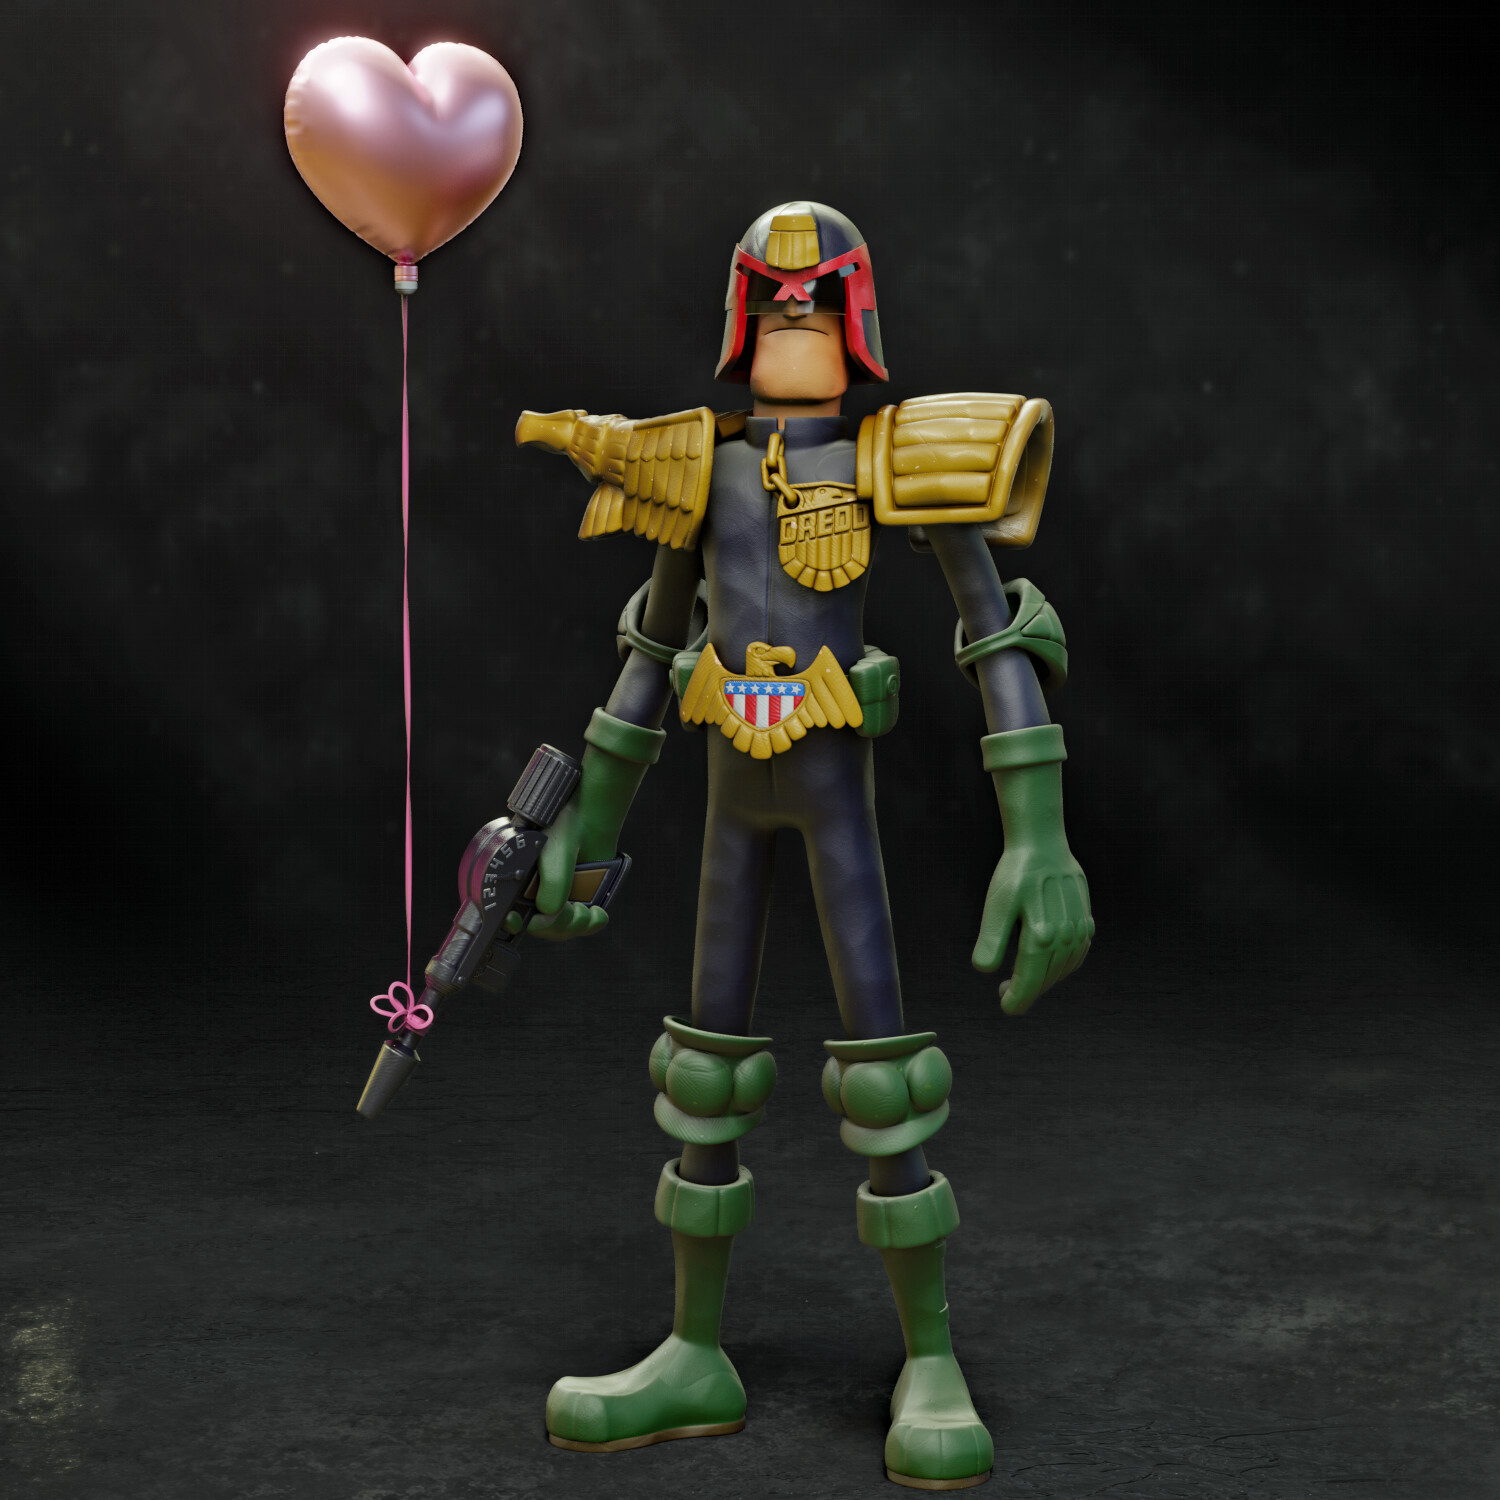 Claymation style Dredd- He is the LAW!